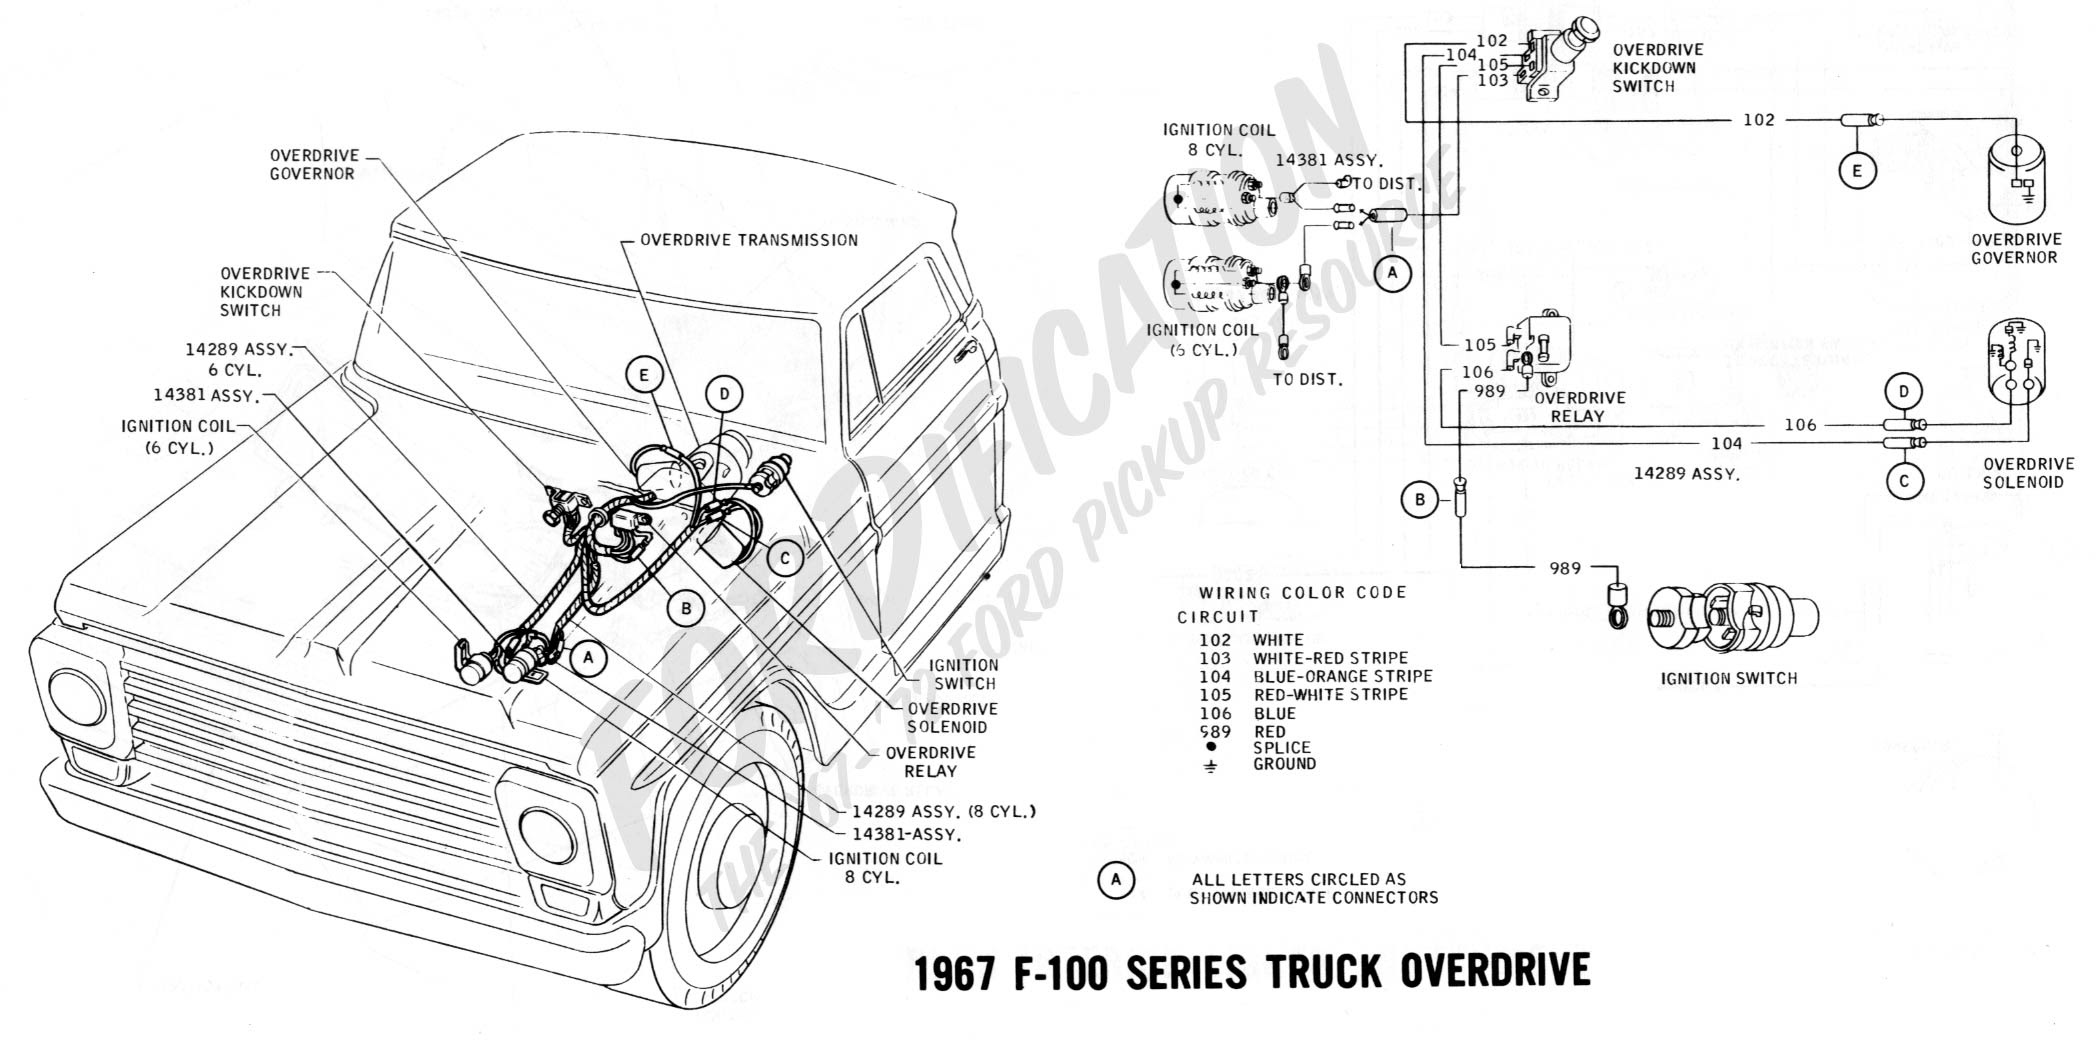 1968 Ford F250 Engine Diagram Wiring Diagram View A View A Zaafran It